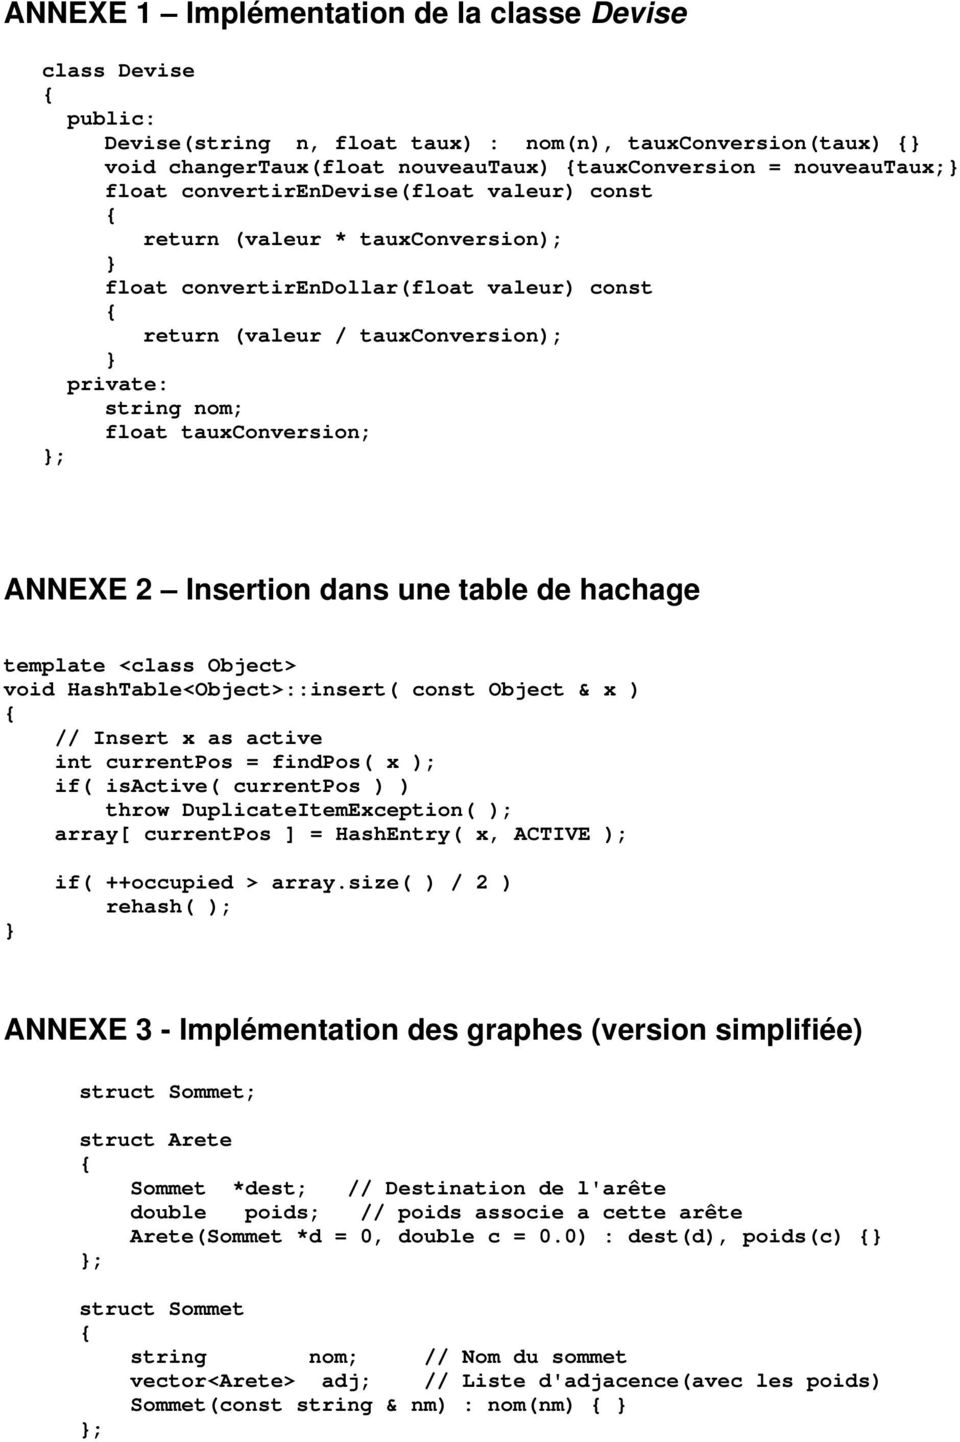 ANNEXE 2 Insertion dans une table de hachage template <class Object> void HashTable<Object>::insert( const Object & x ) // Insert x as active int currentpos = findpos( x ); if( isactive( currentpos )